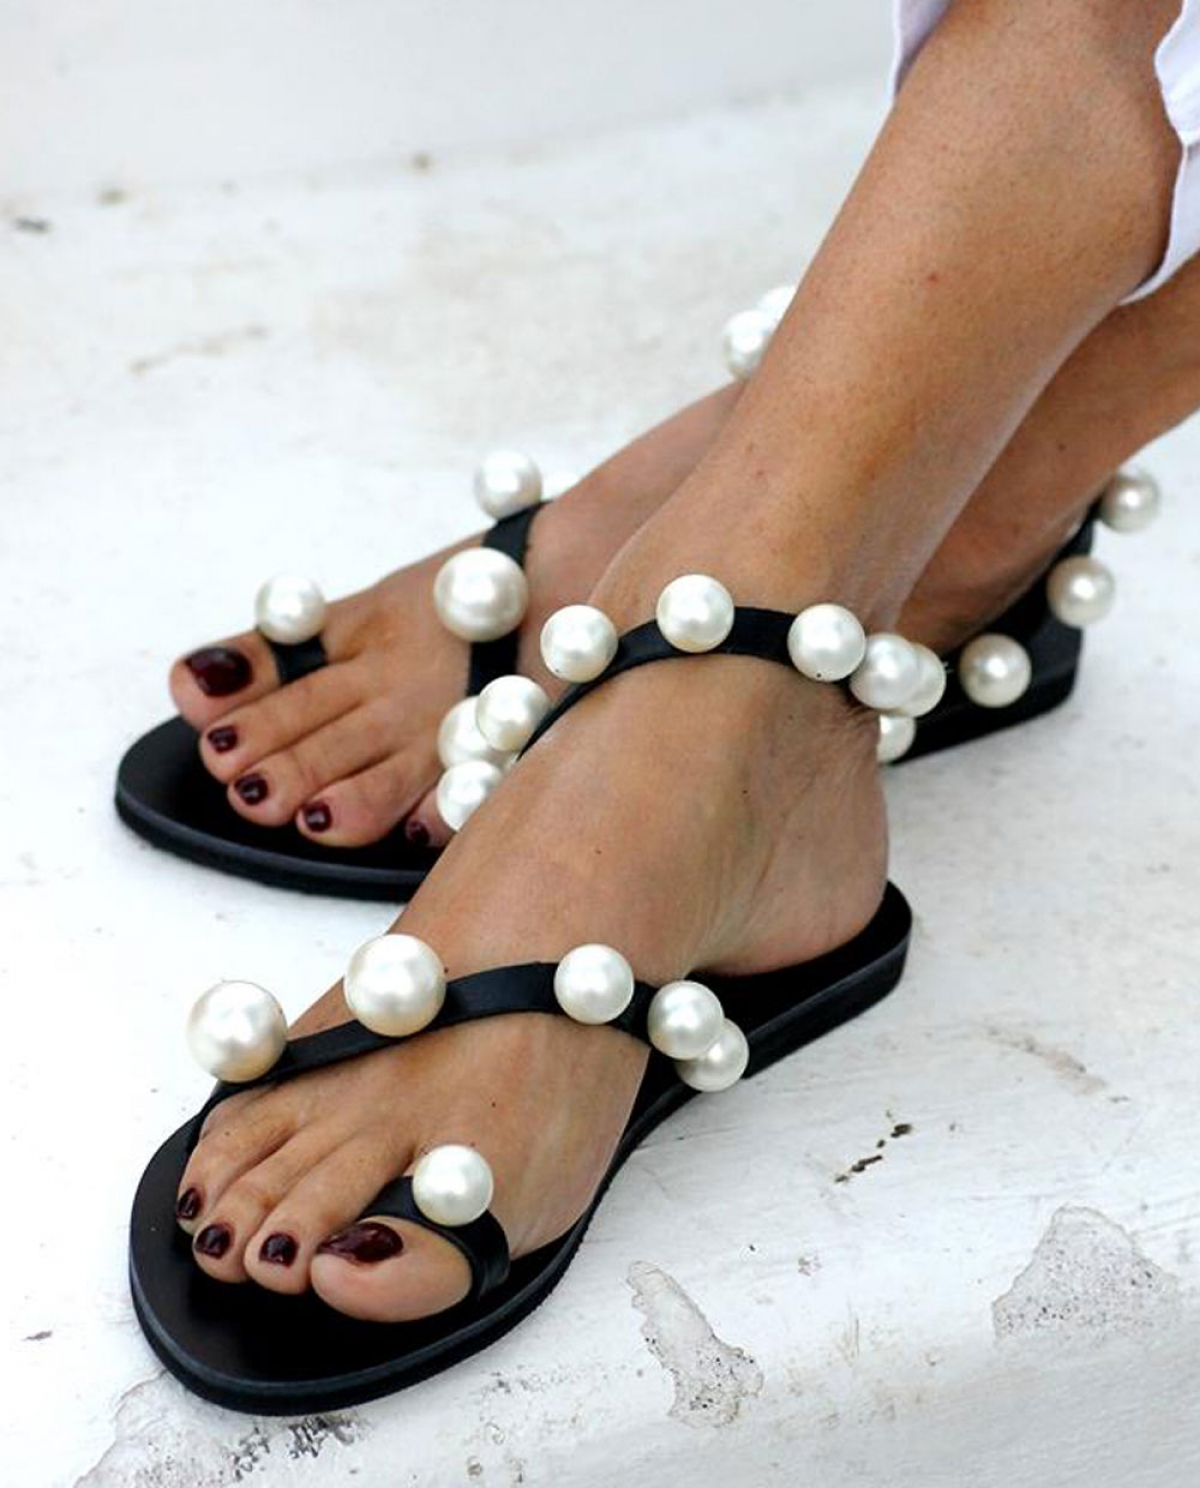 Chantilly Black Sandals